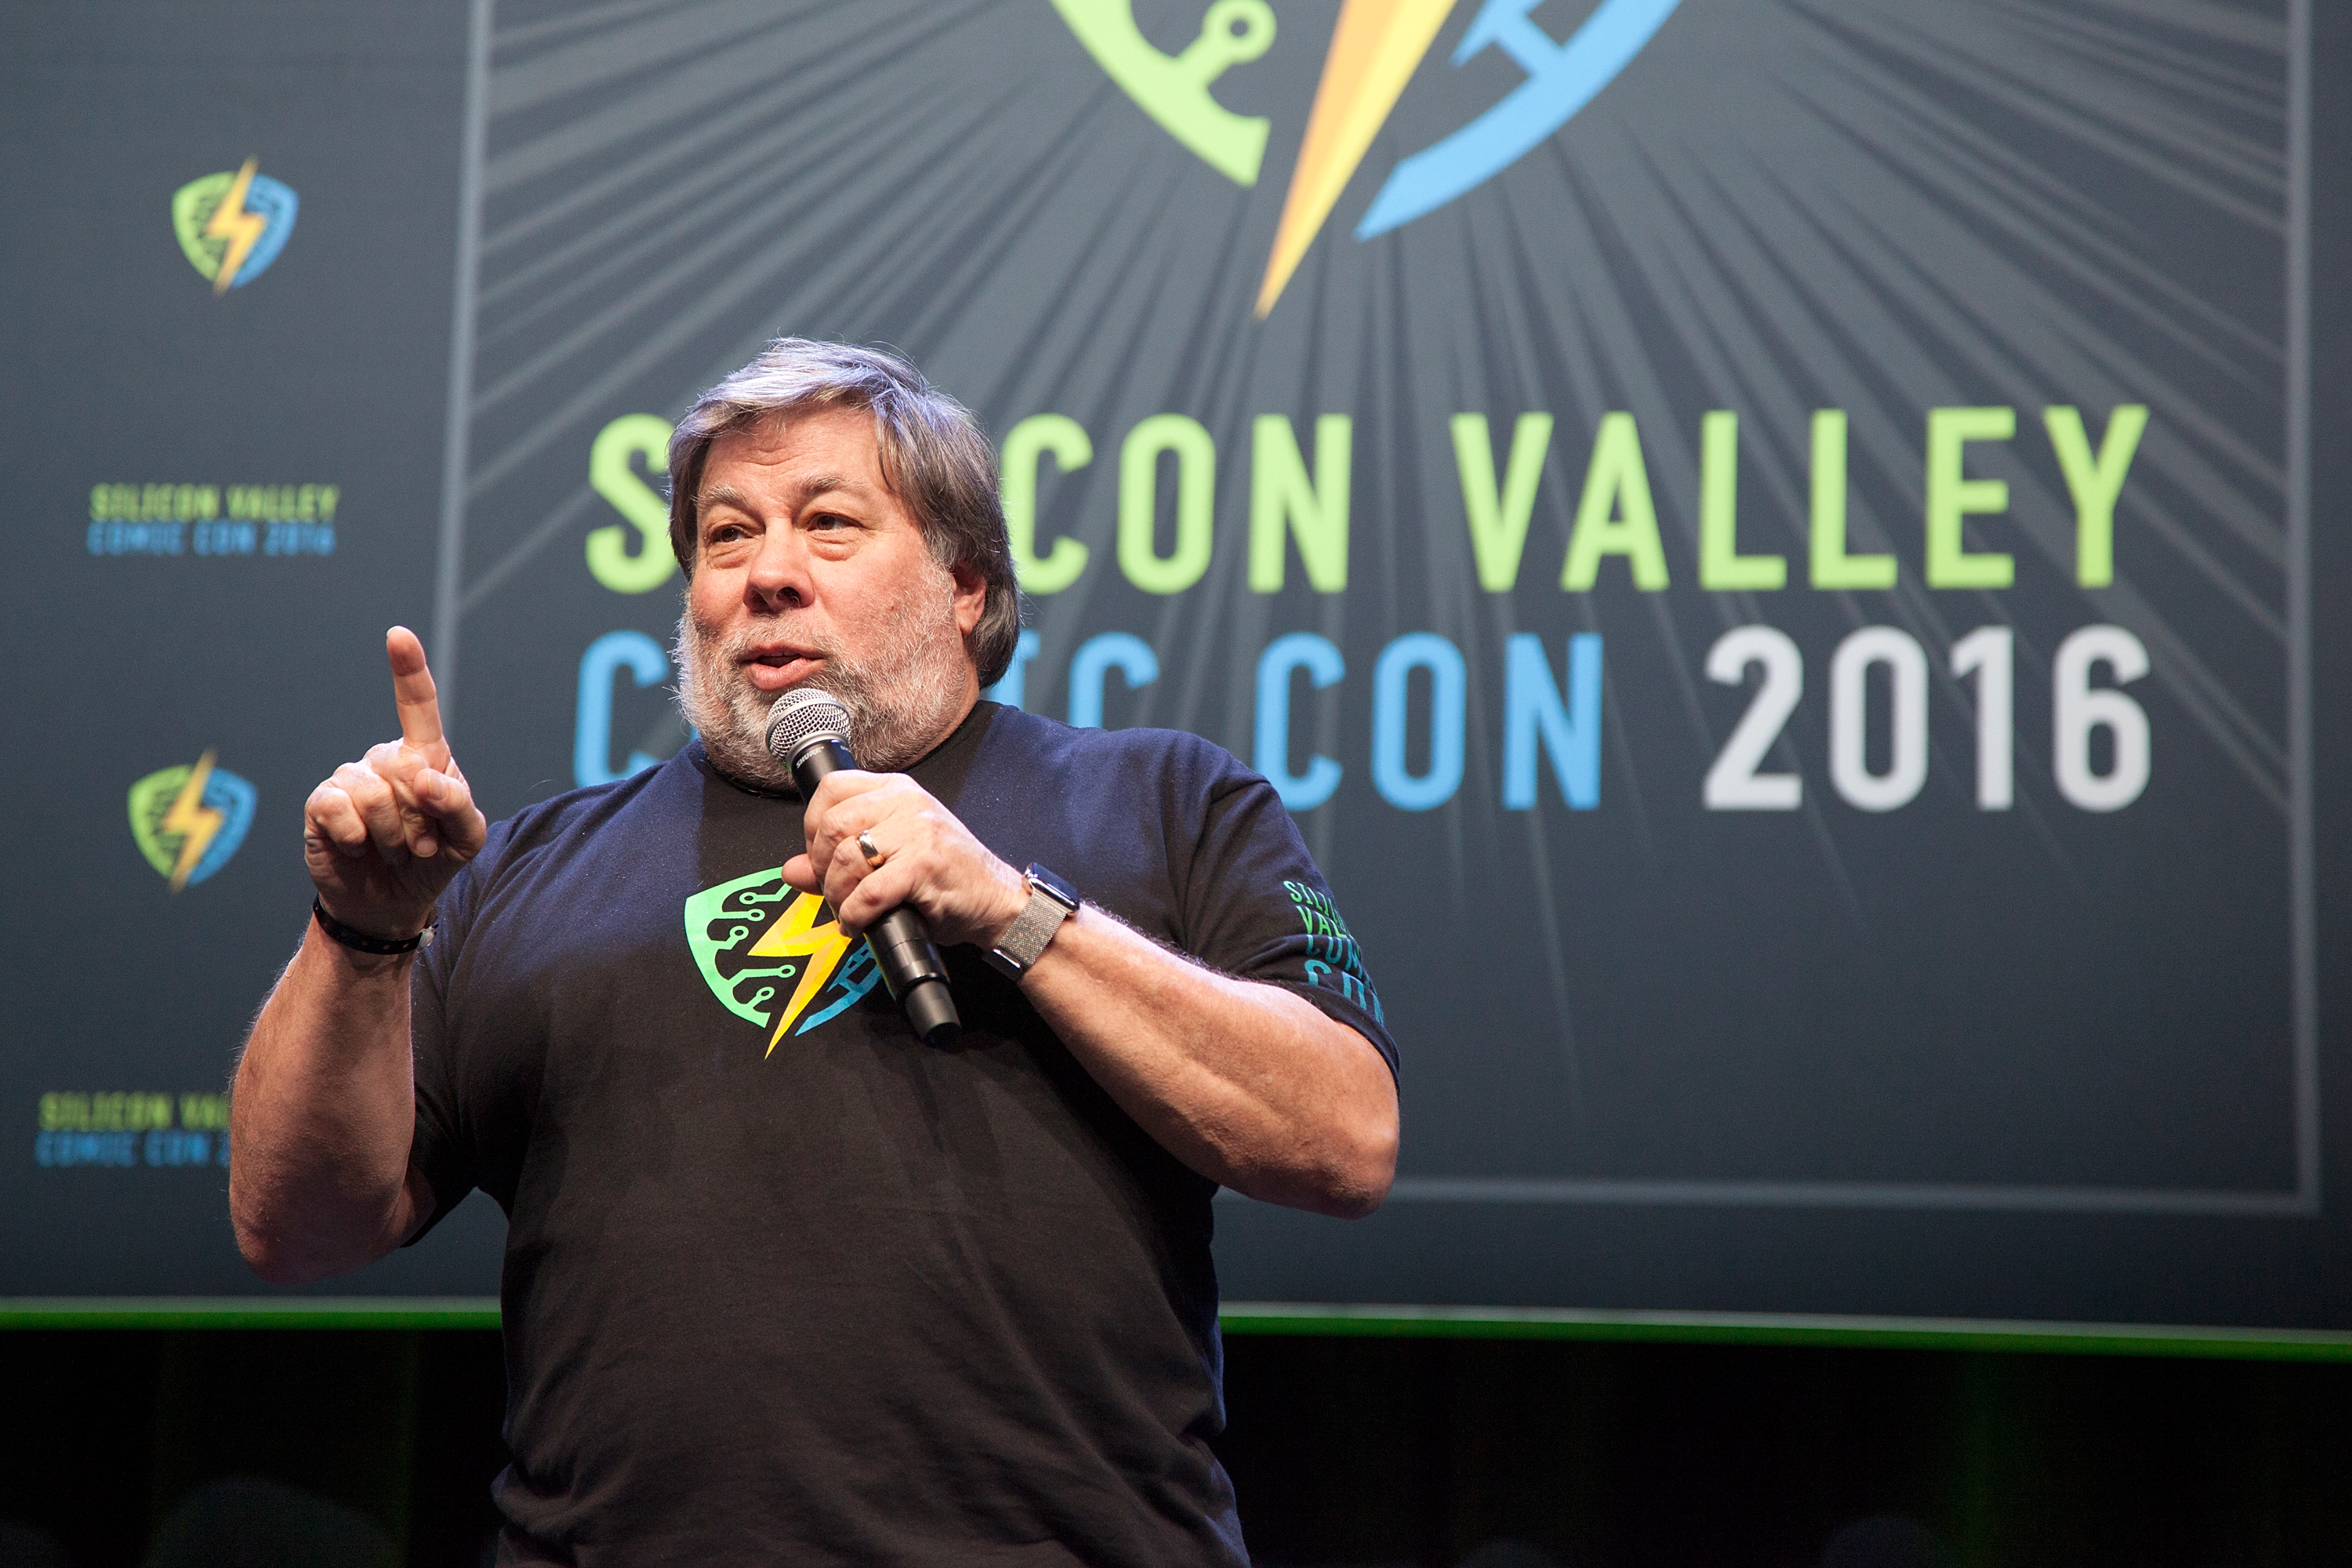 Steve Wozniak addresses the crowd during the closing panel of the Silicon Valley Comic Con on March 20, 2016 in San Jose, Calif.